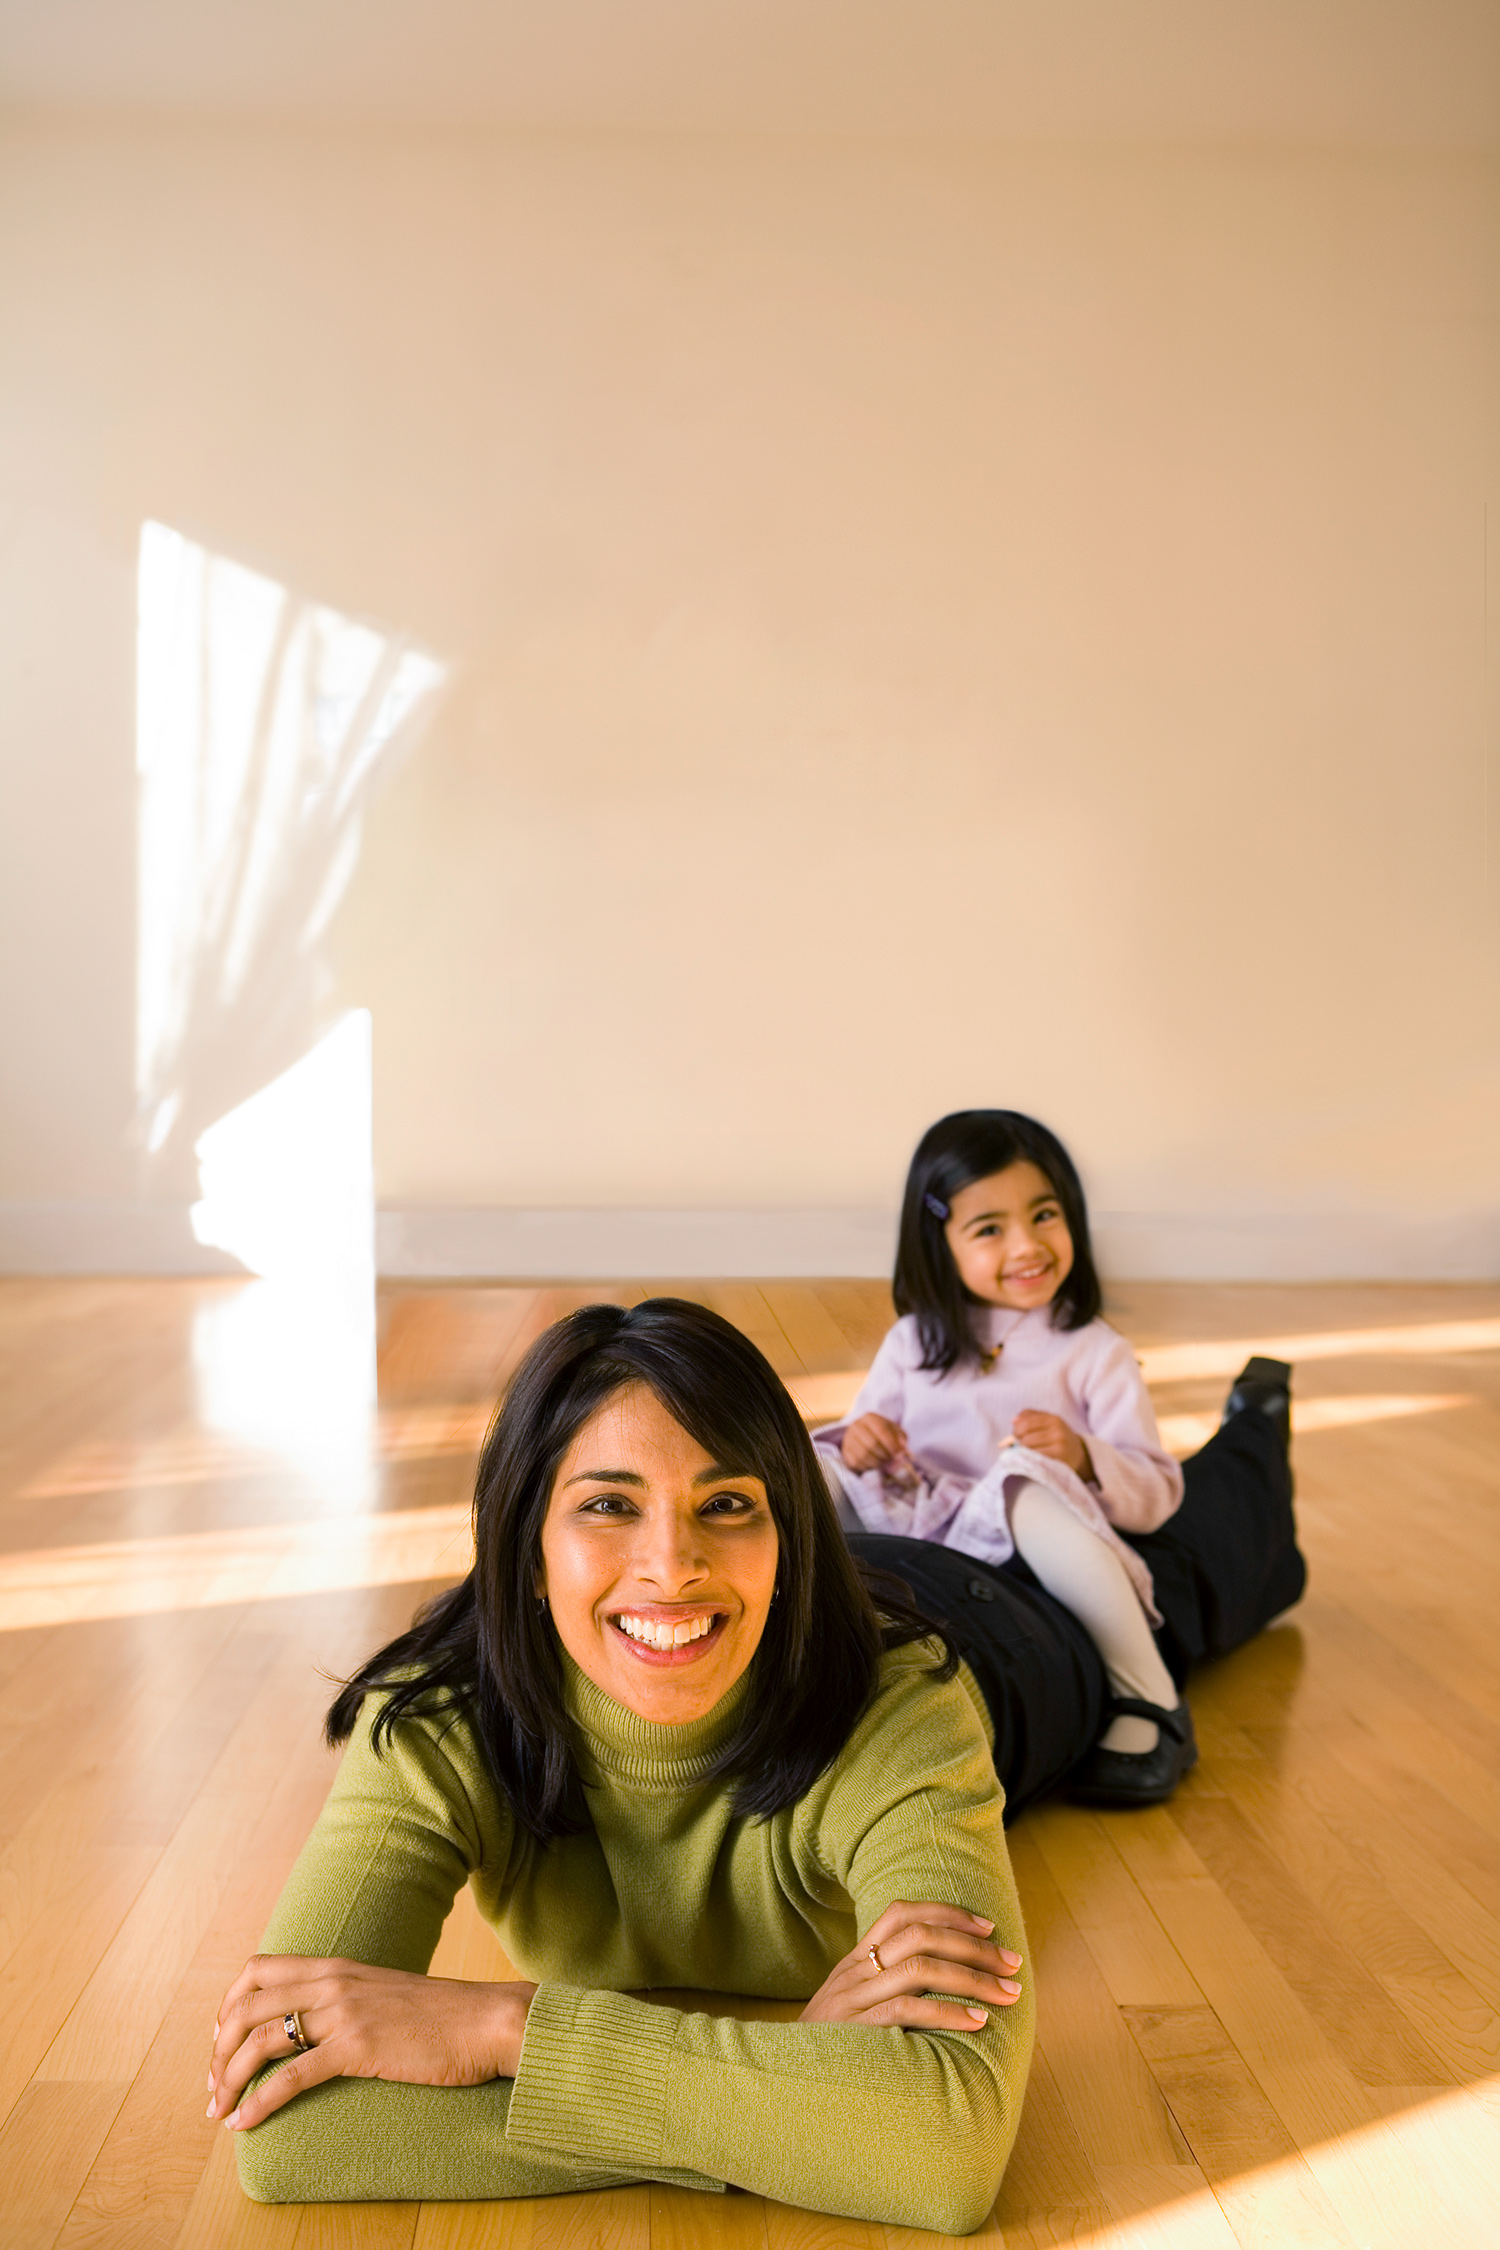 Sangeeta Bhatia lies on a wooden floor and is propped up on her elbows. Her daughter sits on her legs.